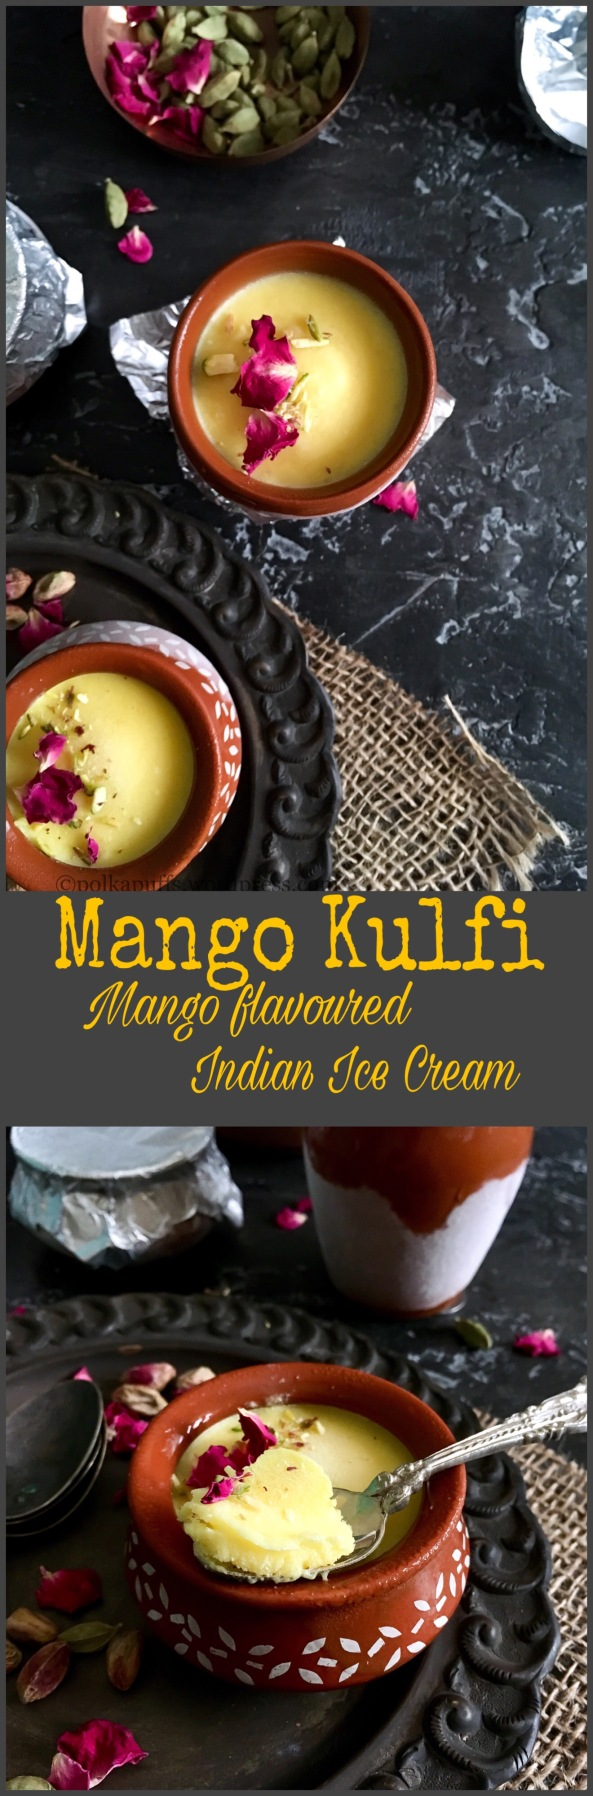 Mango Kulfi | Mango flavoured Indian Ice Cream | Glutenfree recipe